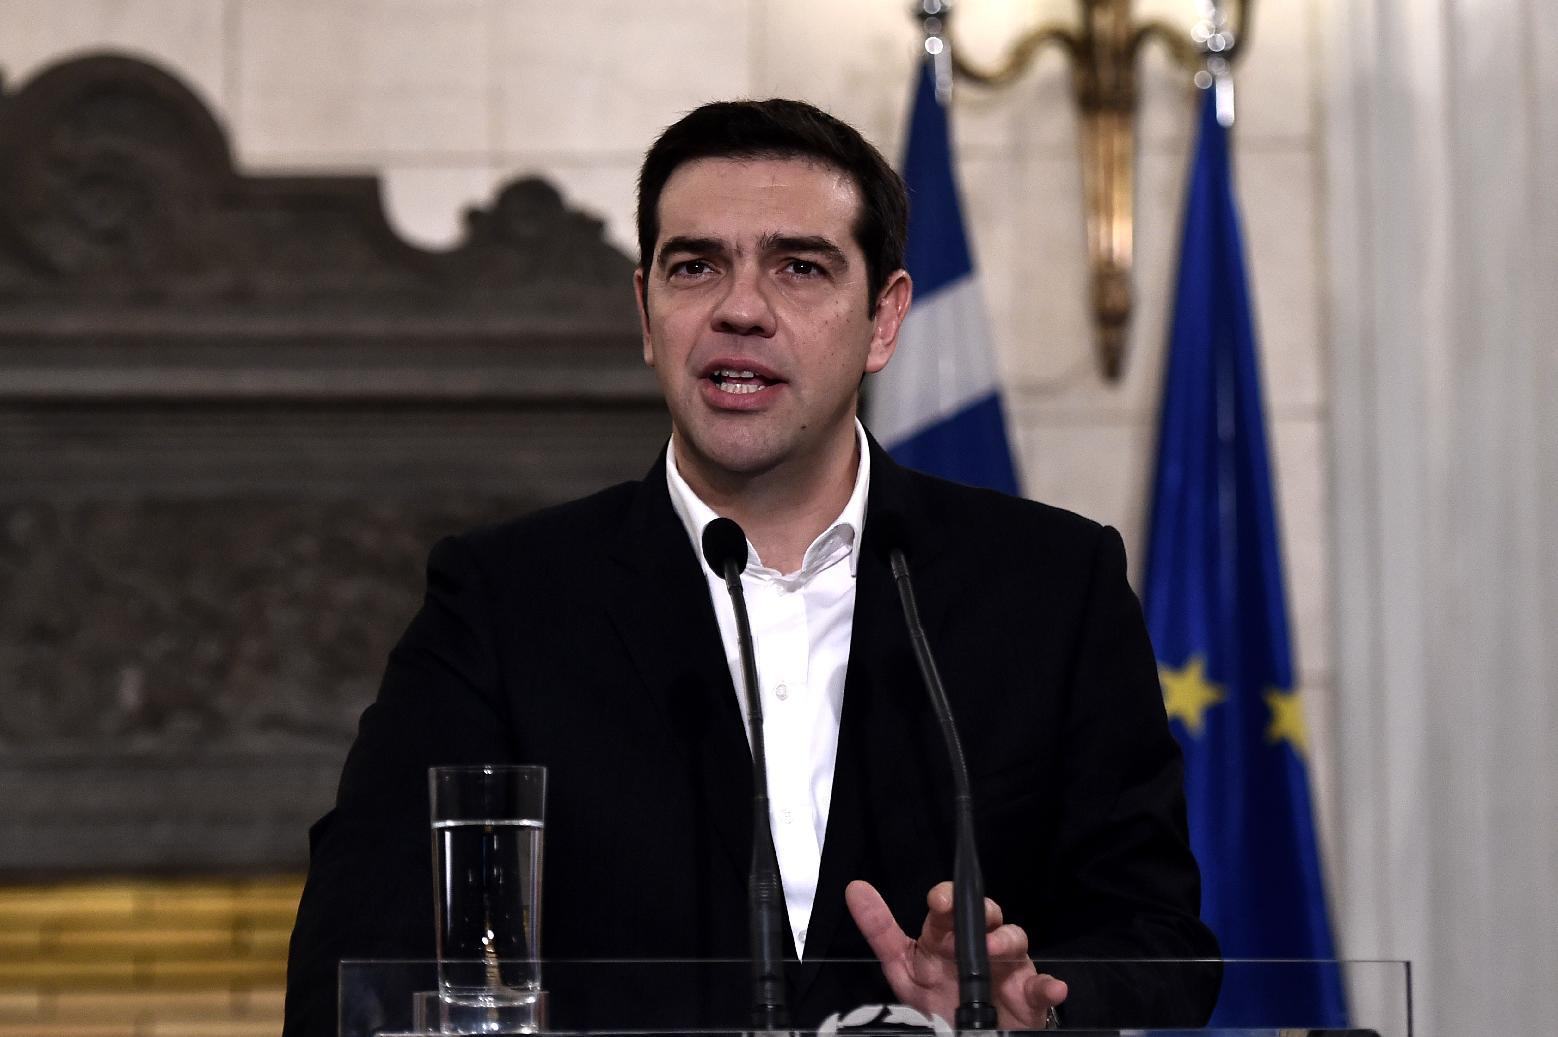 EU, Germany warn Greece over debt reduction ambitions